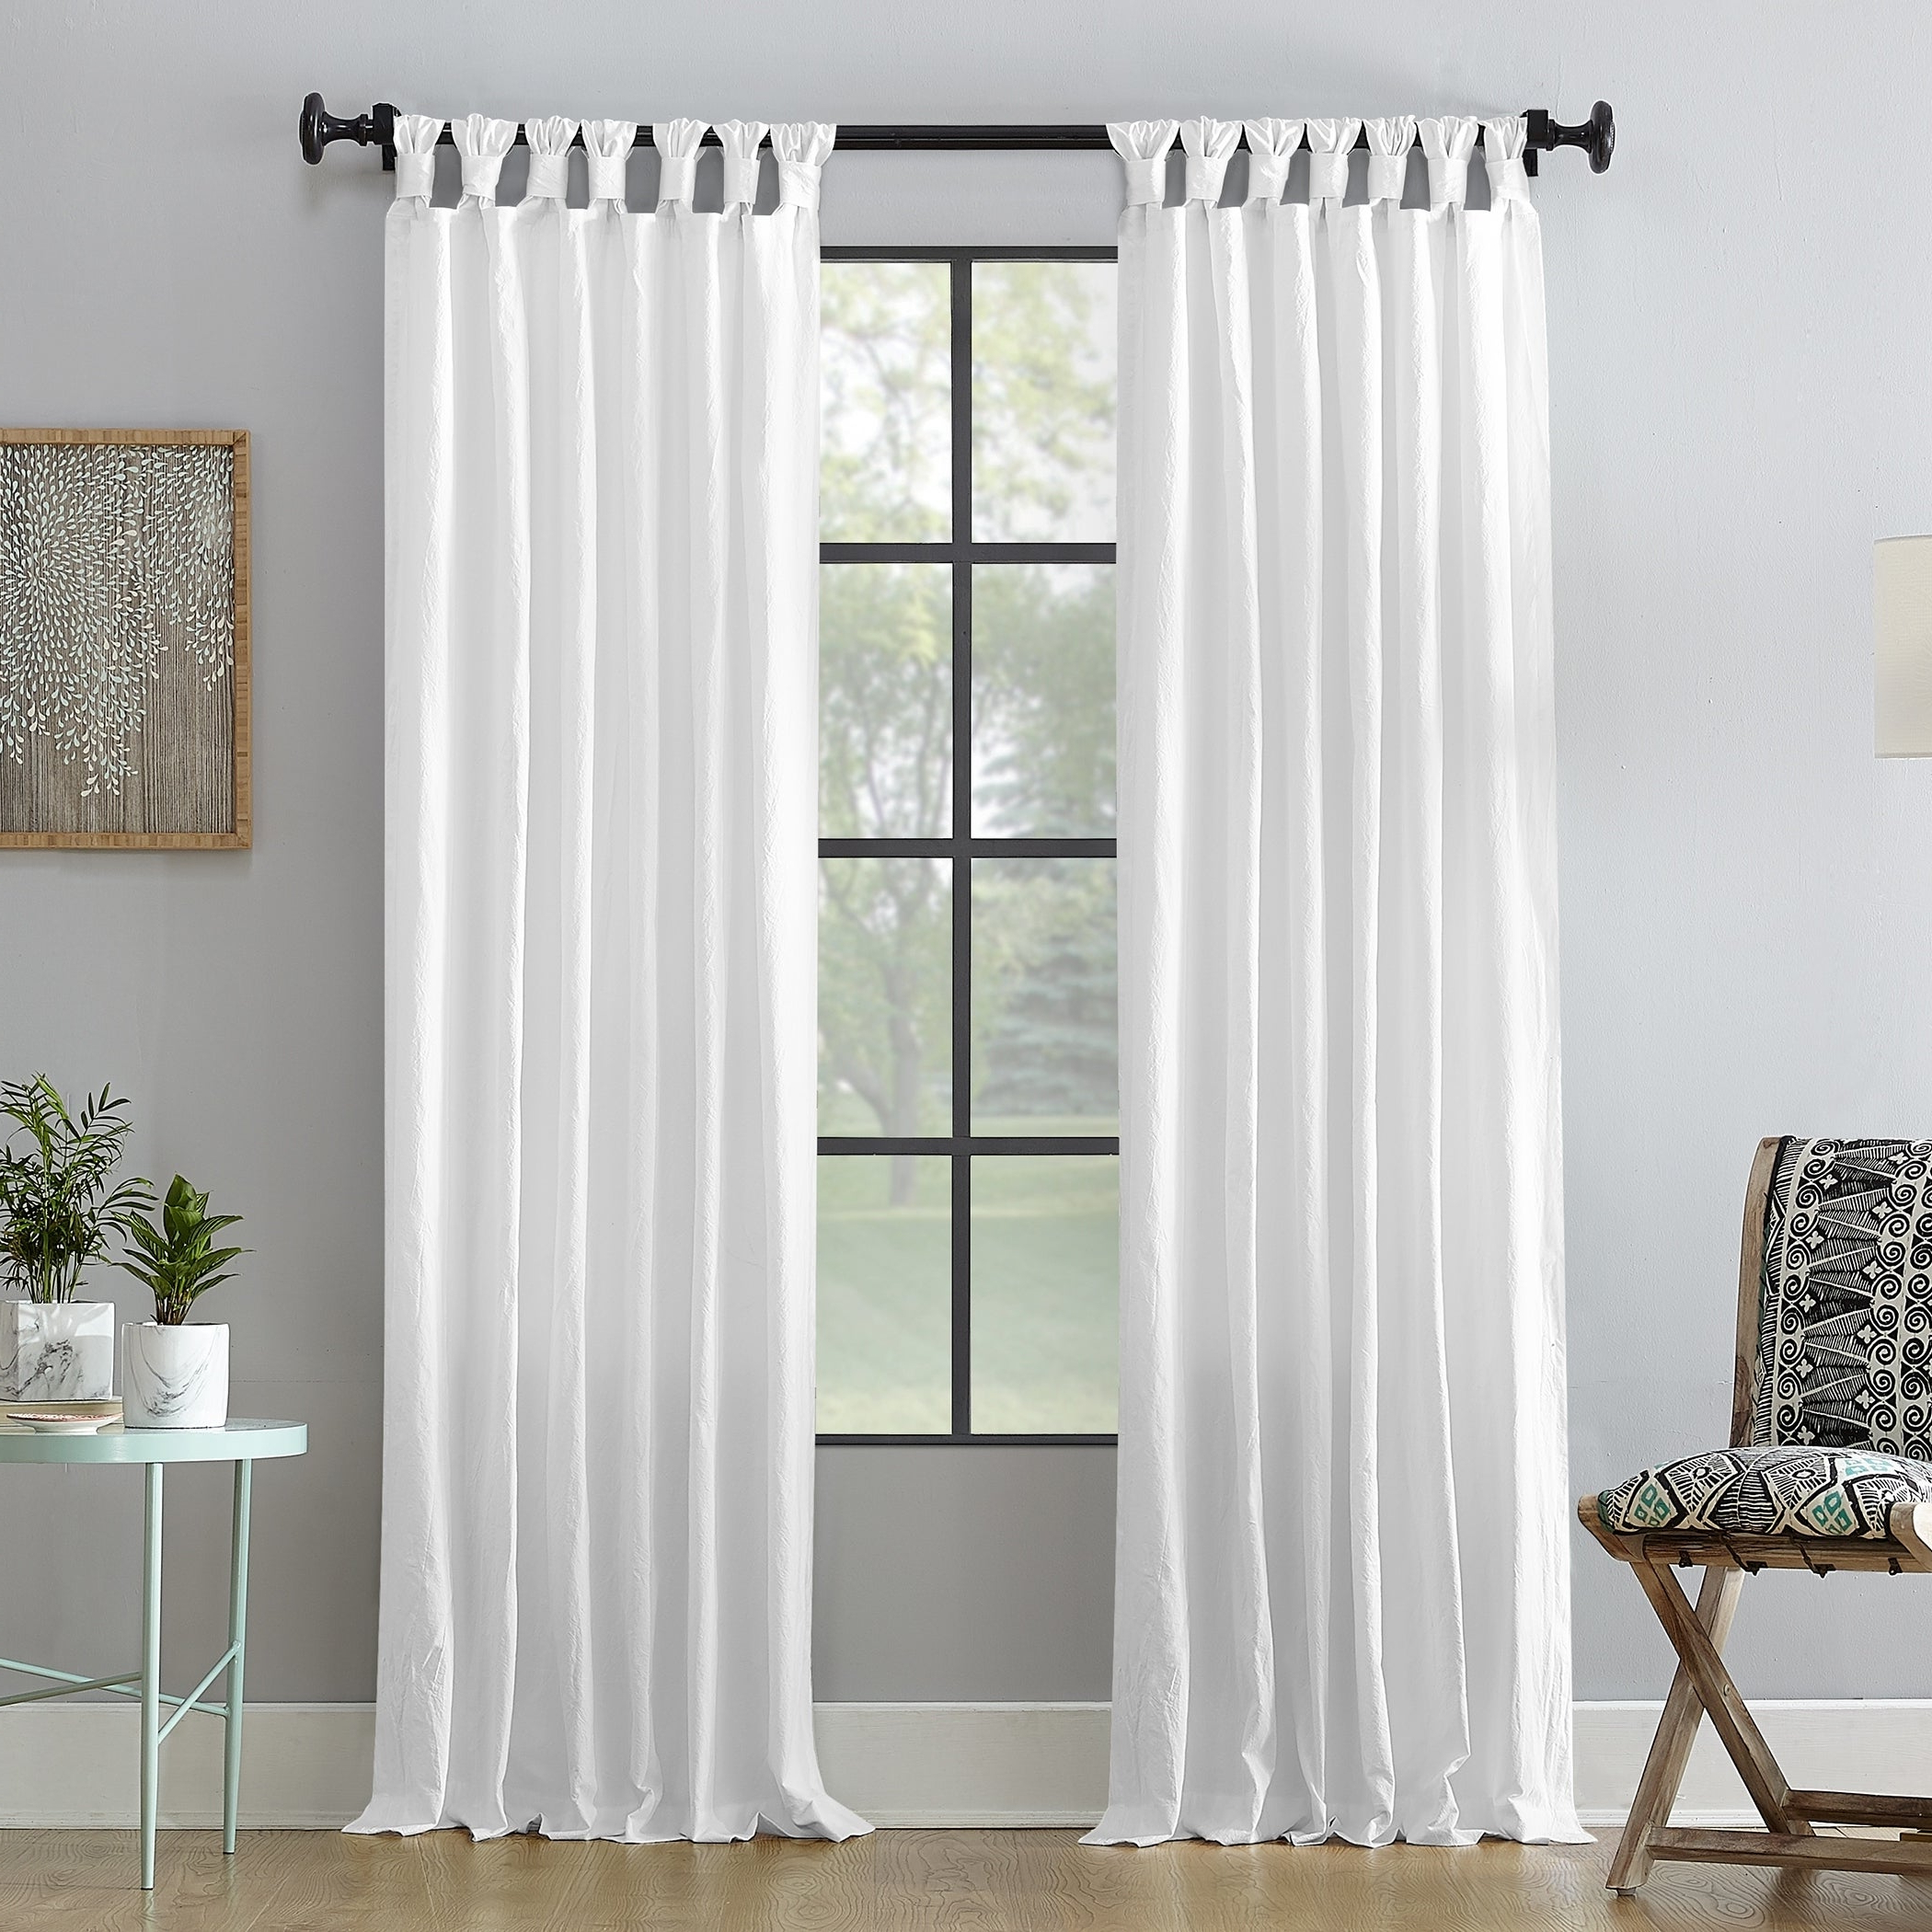 Twisted Tab Lined Single Curtain Panels With Well Known Archaeo Washed Cotton Twist Tab Single Curtain Panel (View 8 of 20)